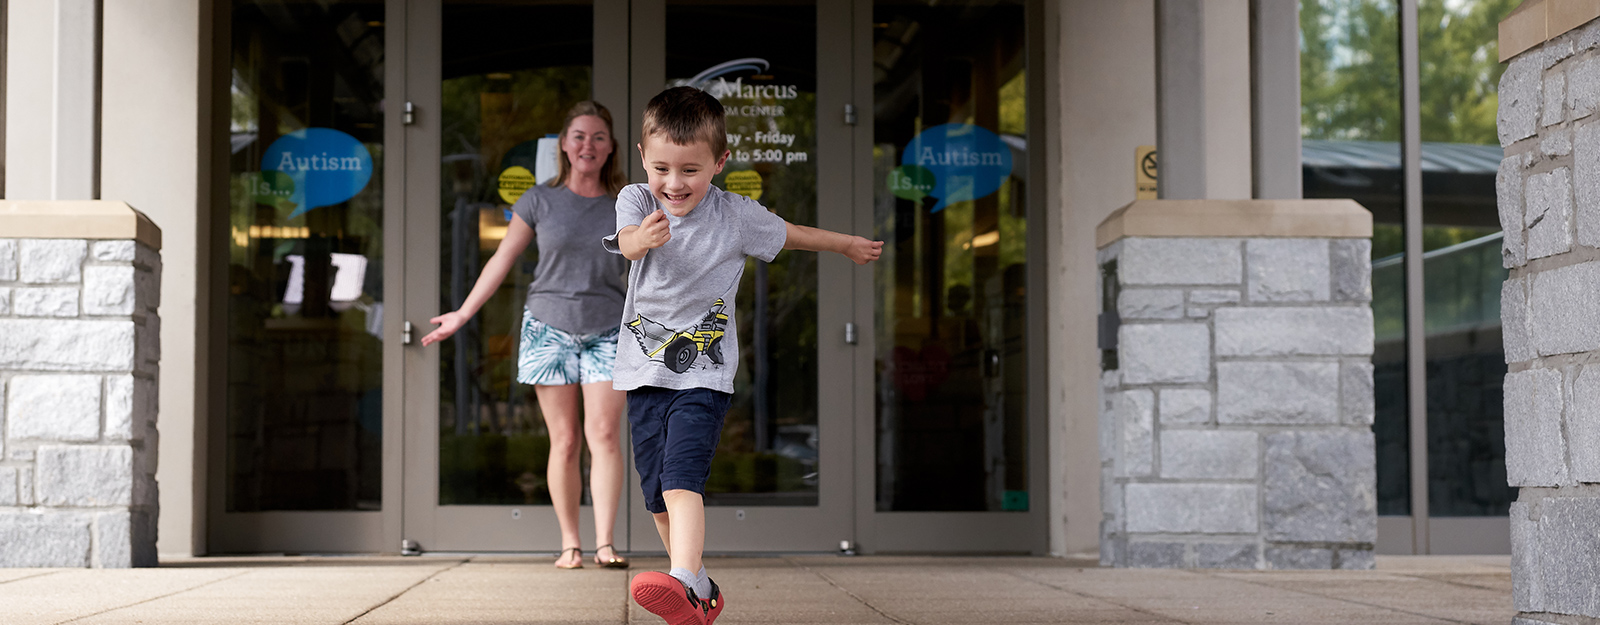 boy at marcus autism center skipping